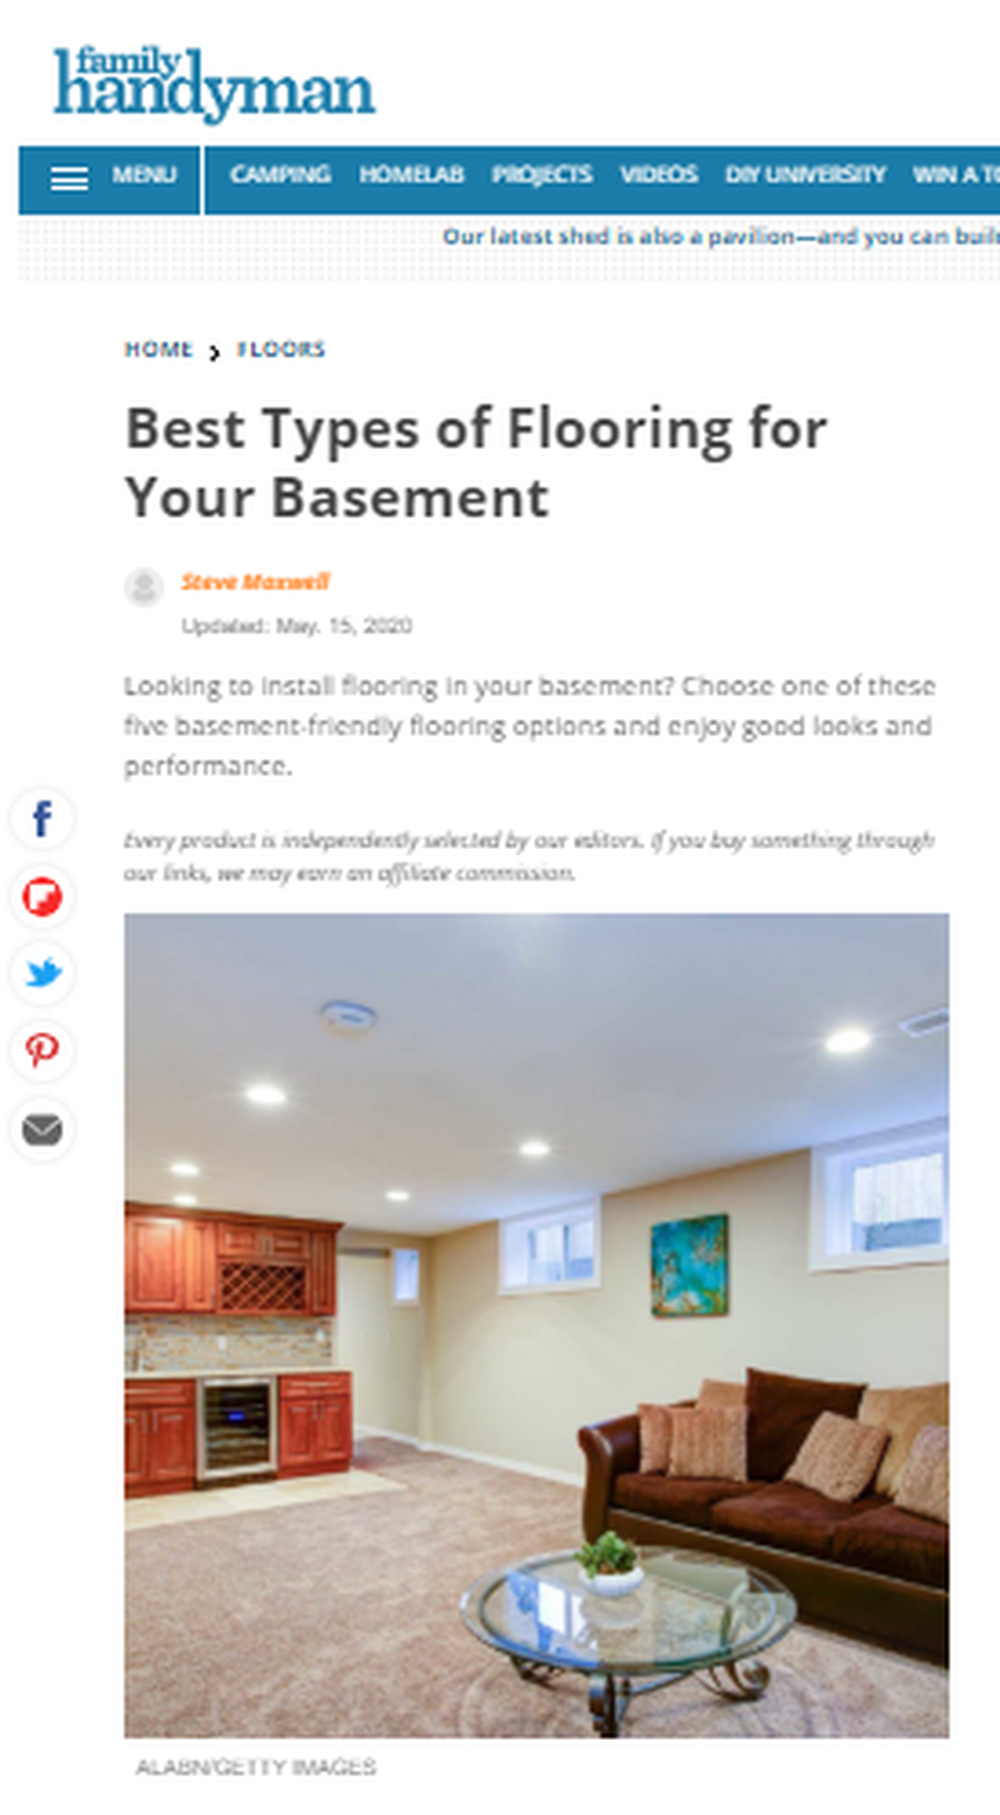 Best_Types_of_Flooring_for_Your_Basement_The_Family_Handyman.png